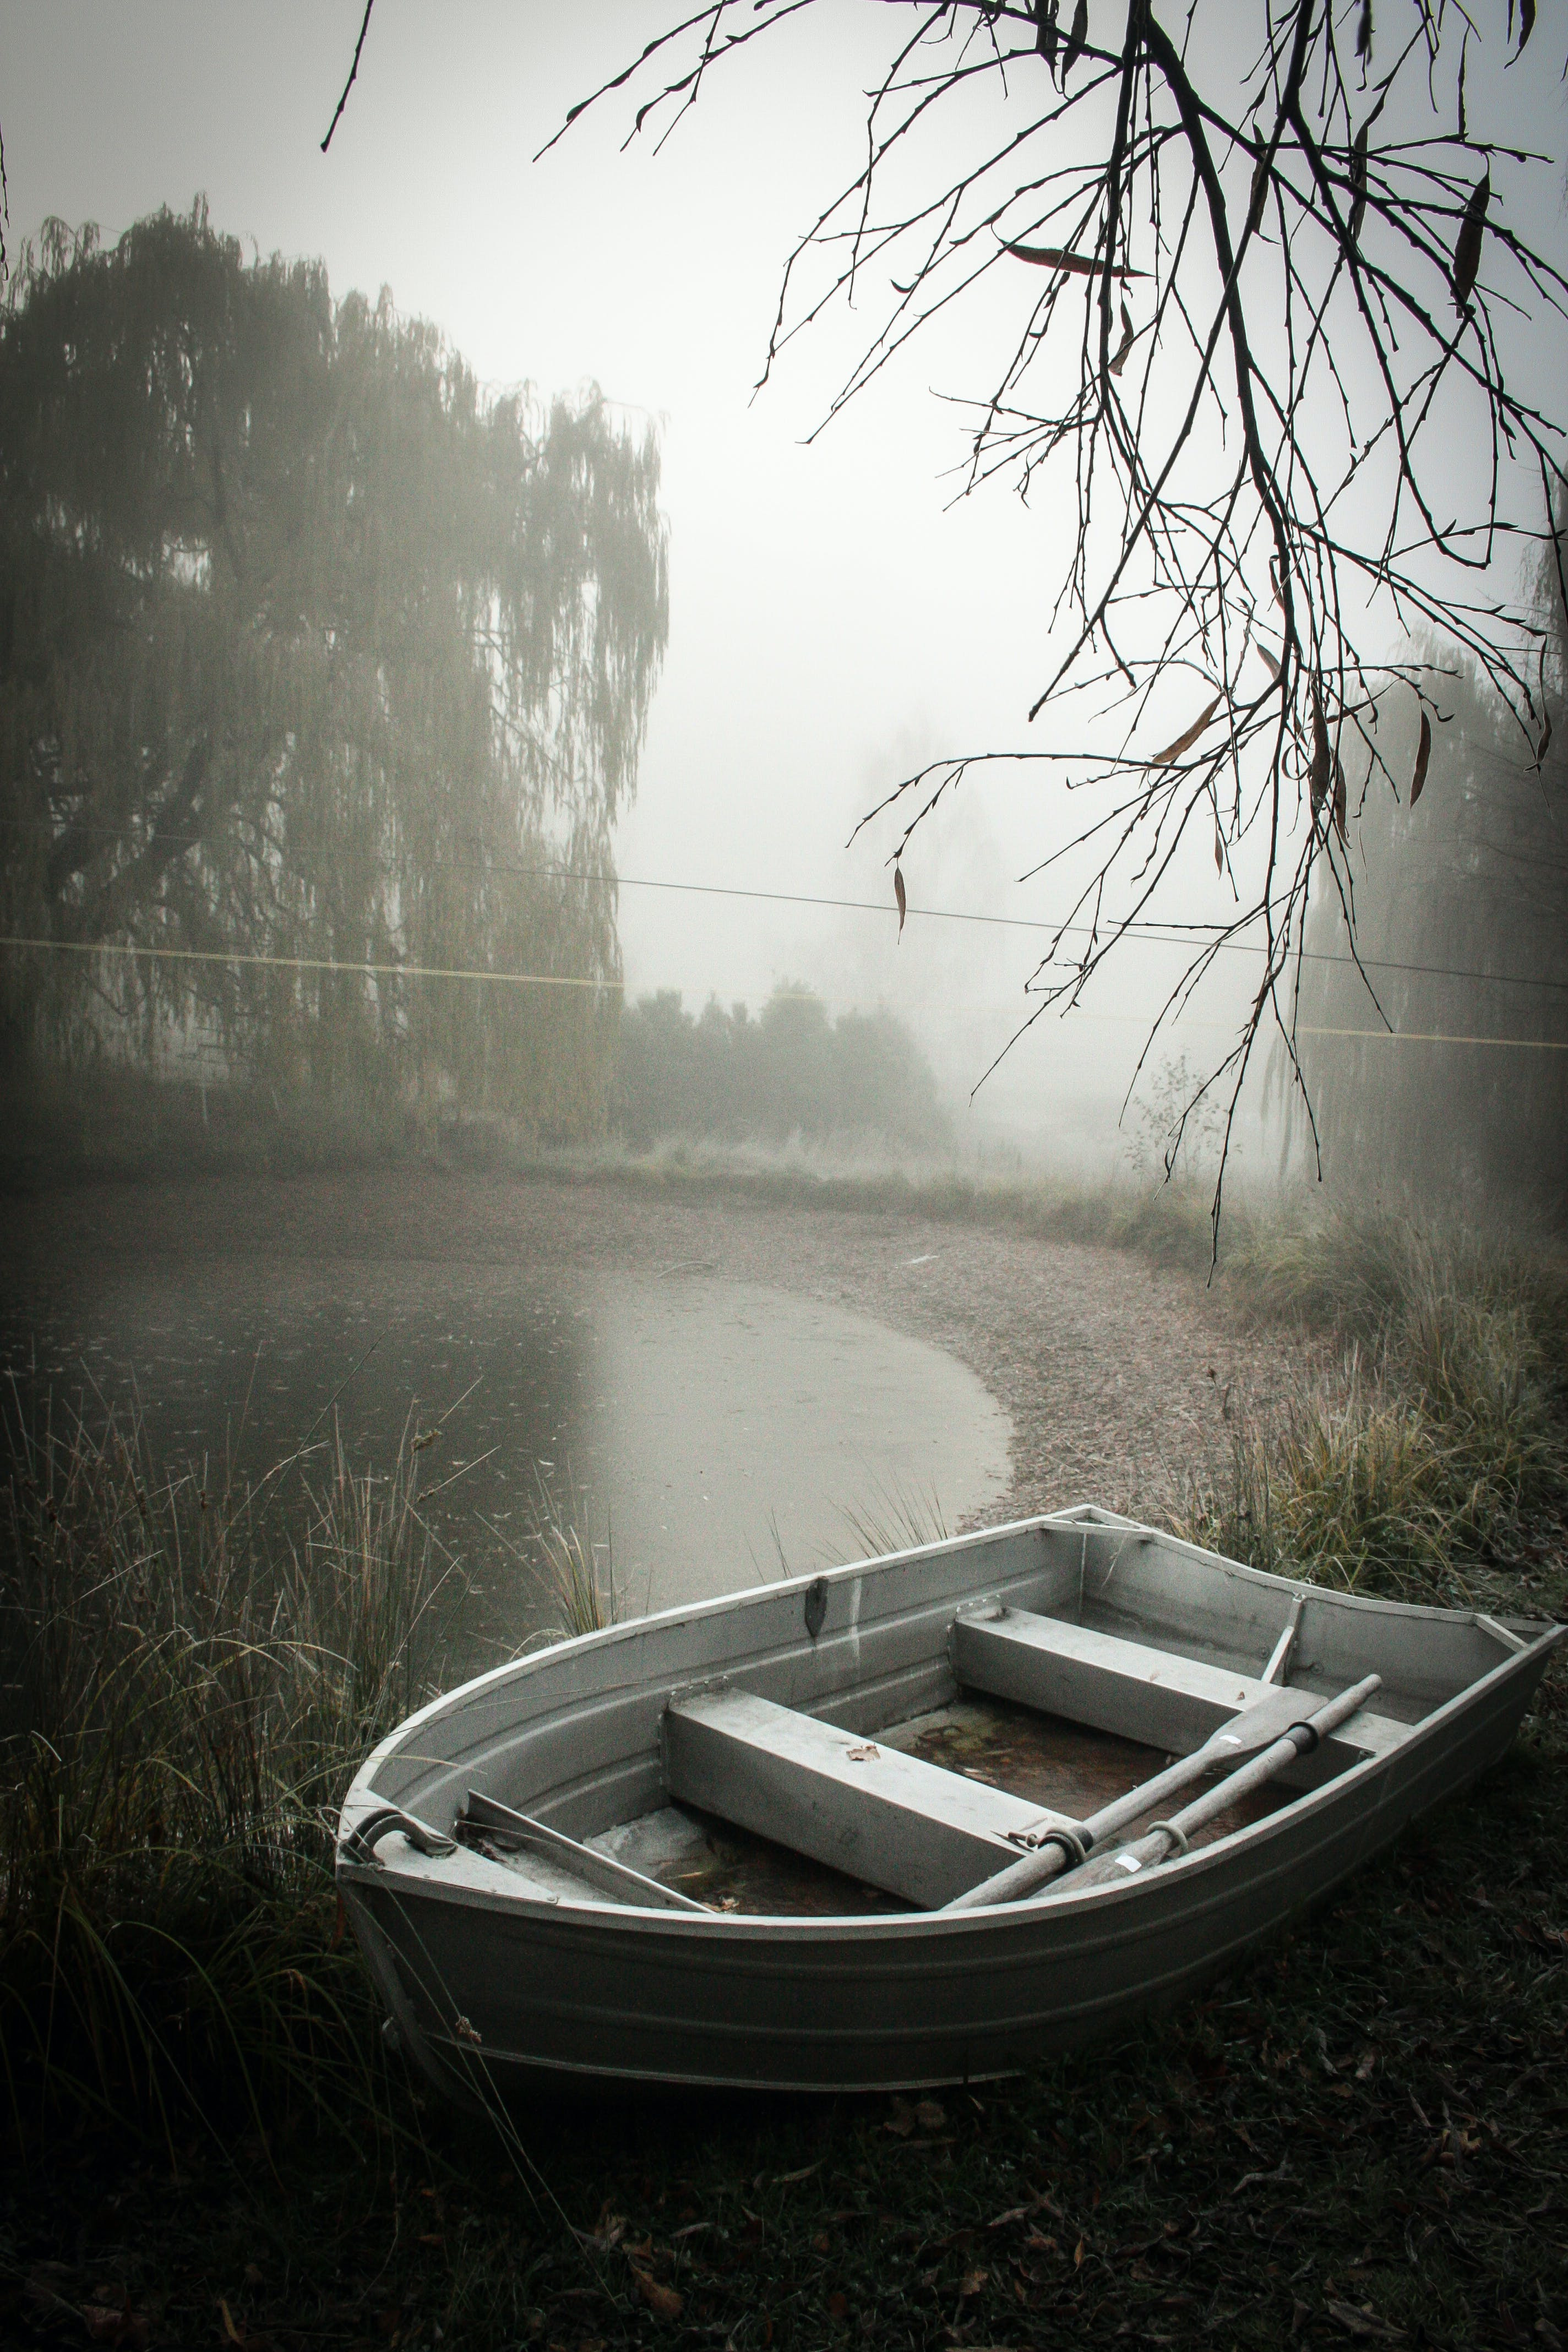 Free stock photo of boat, misty, new zealand, pond